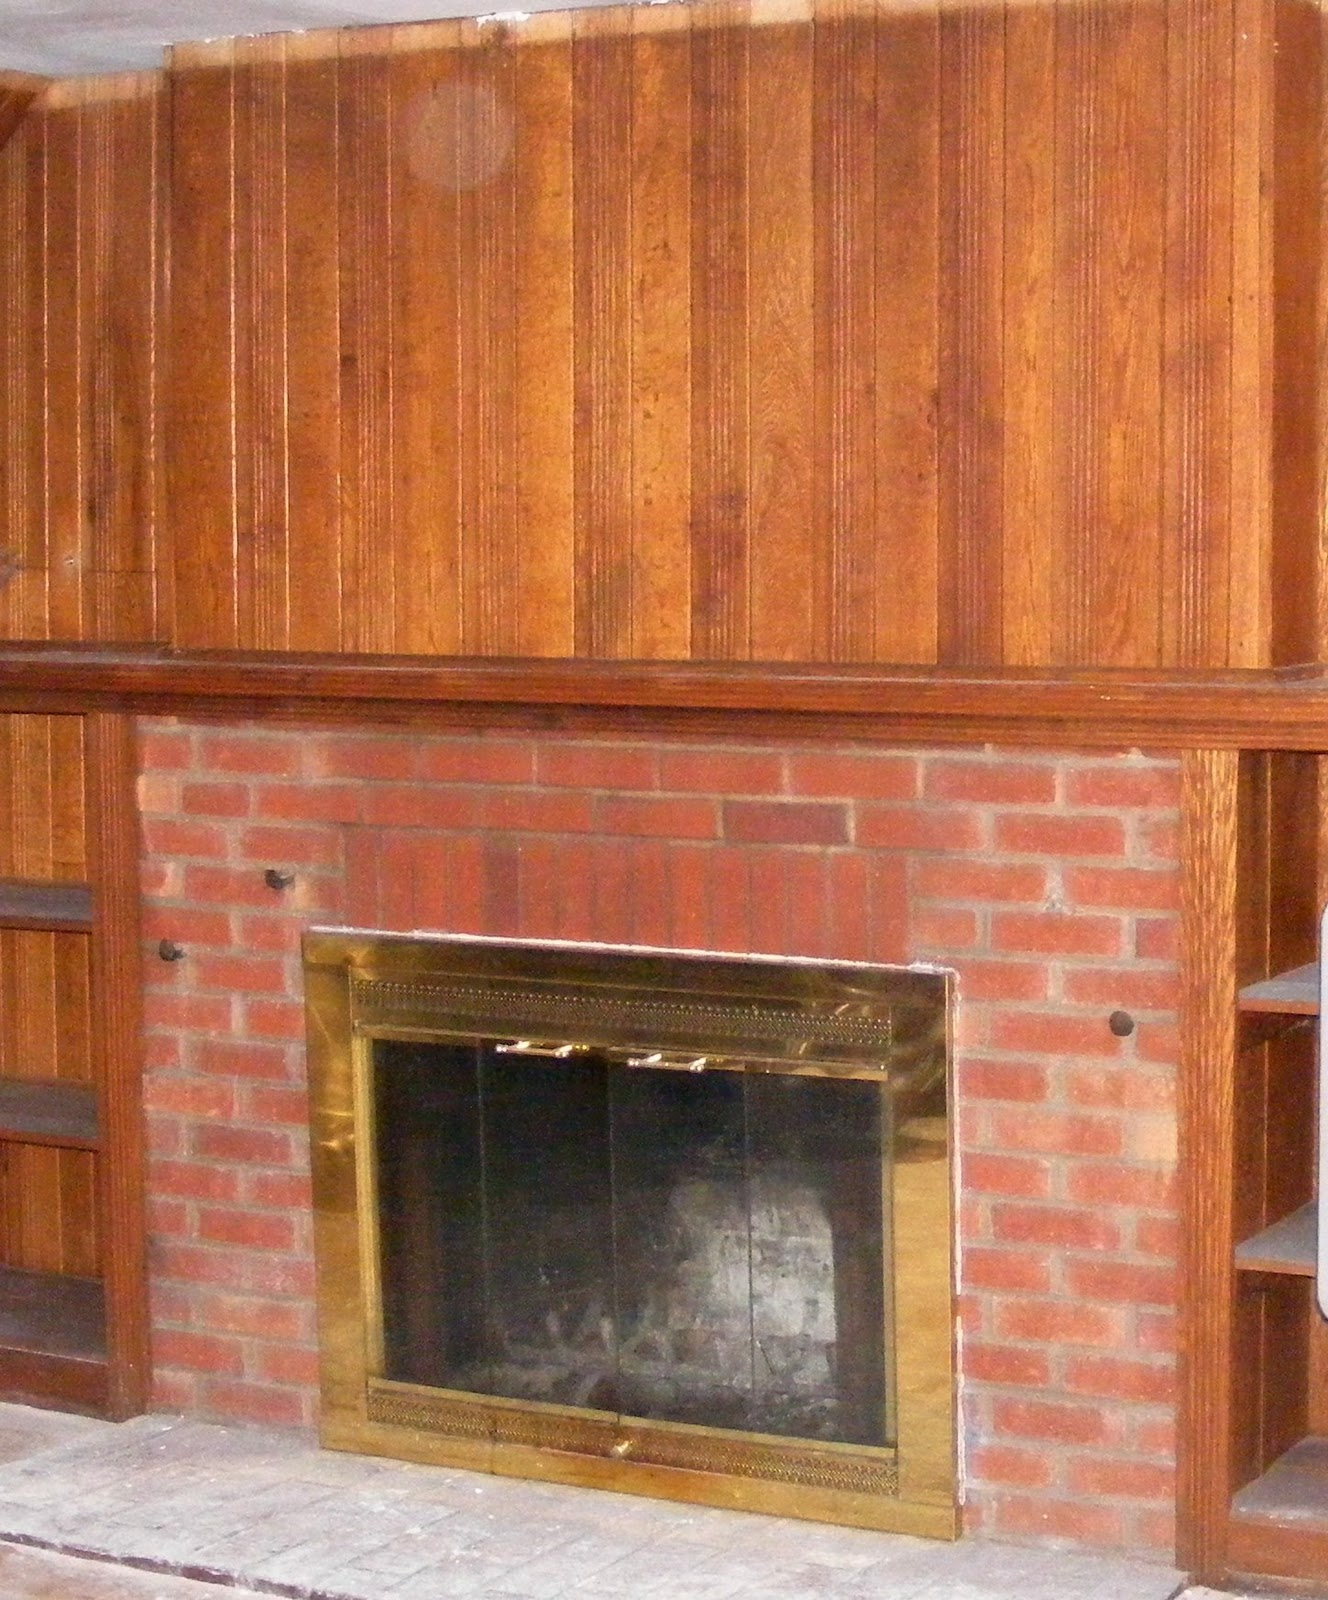 Covering a brick fireplace - How To Cover A Brick Fireplace